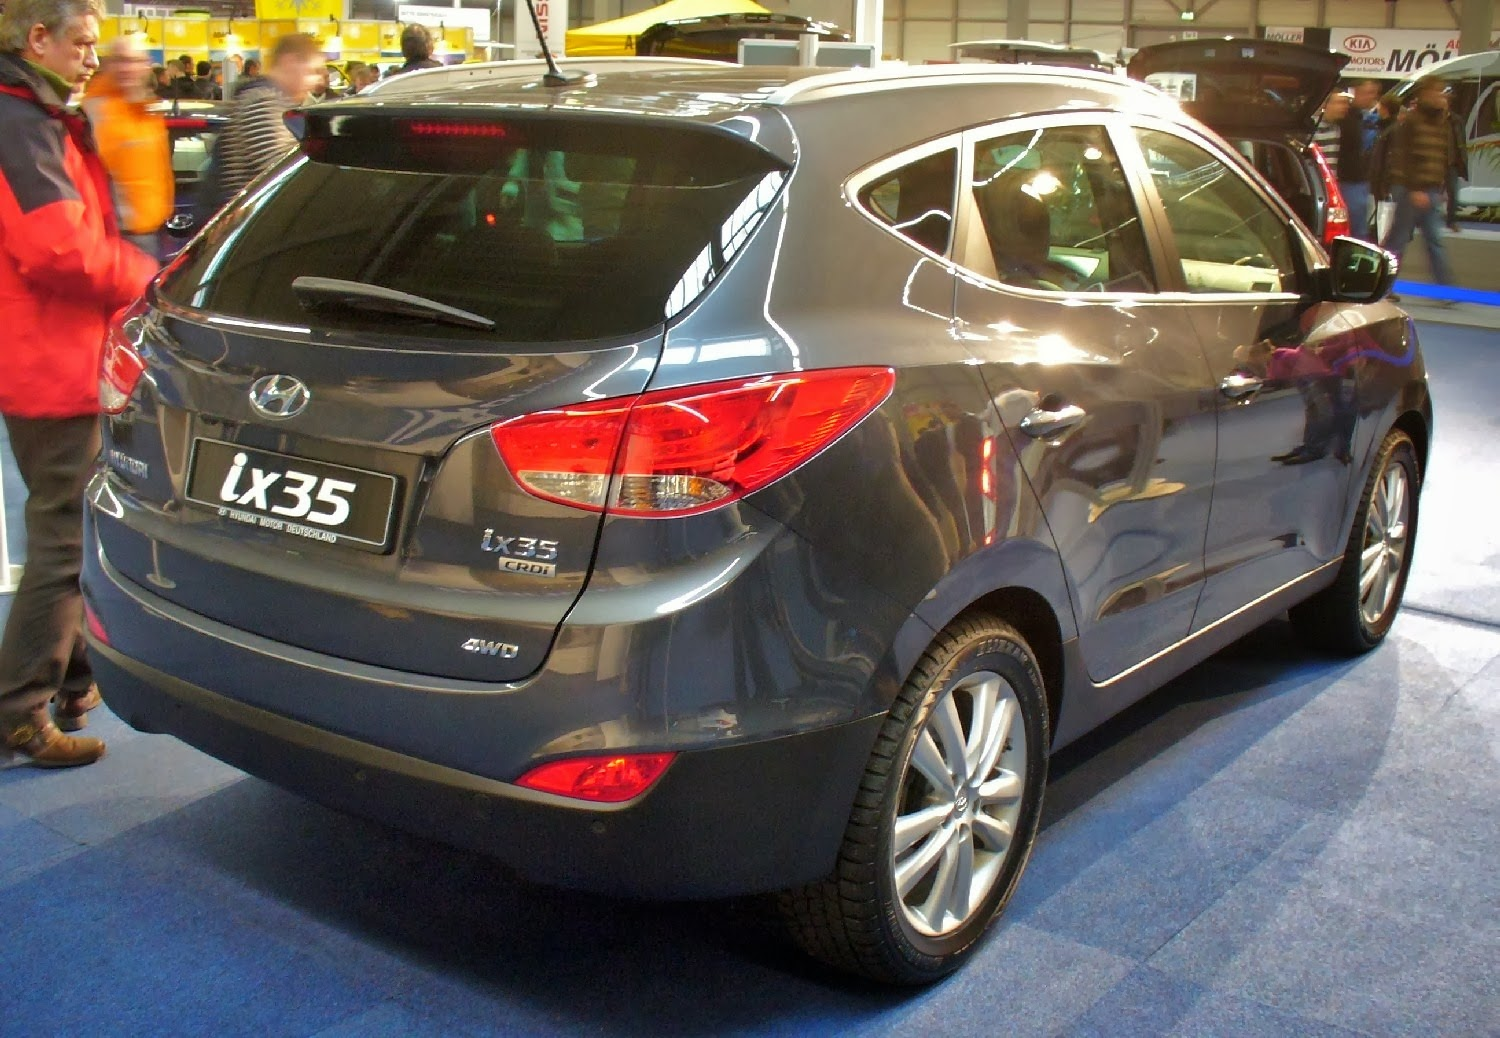 India's Most Awaited Compact SUVs for 2014